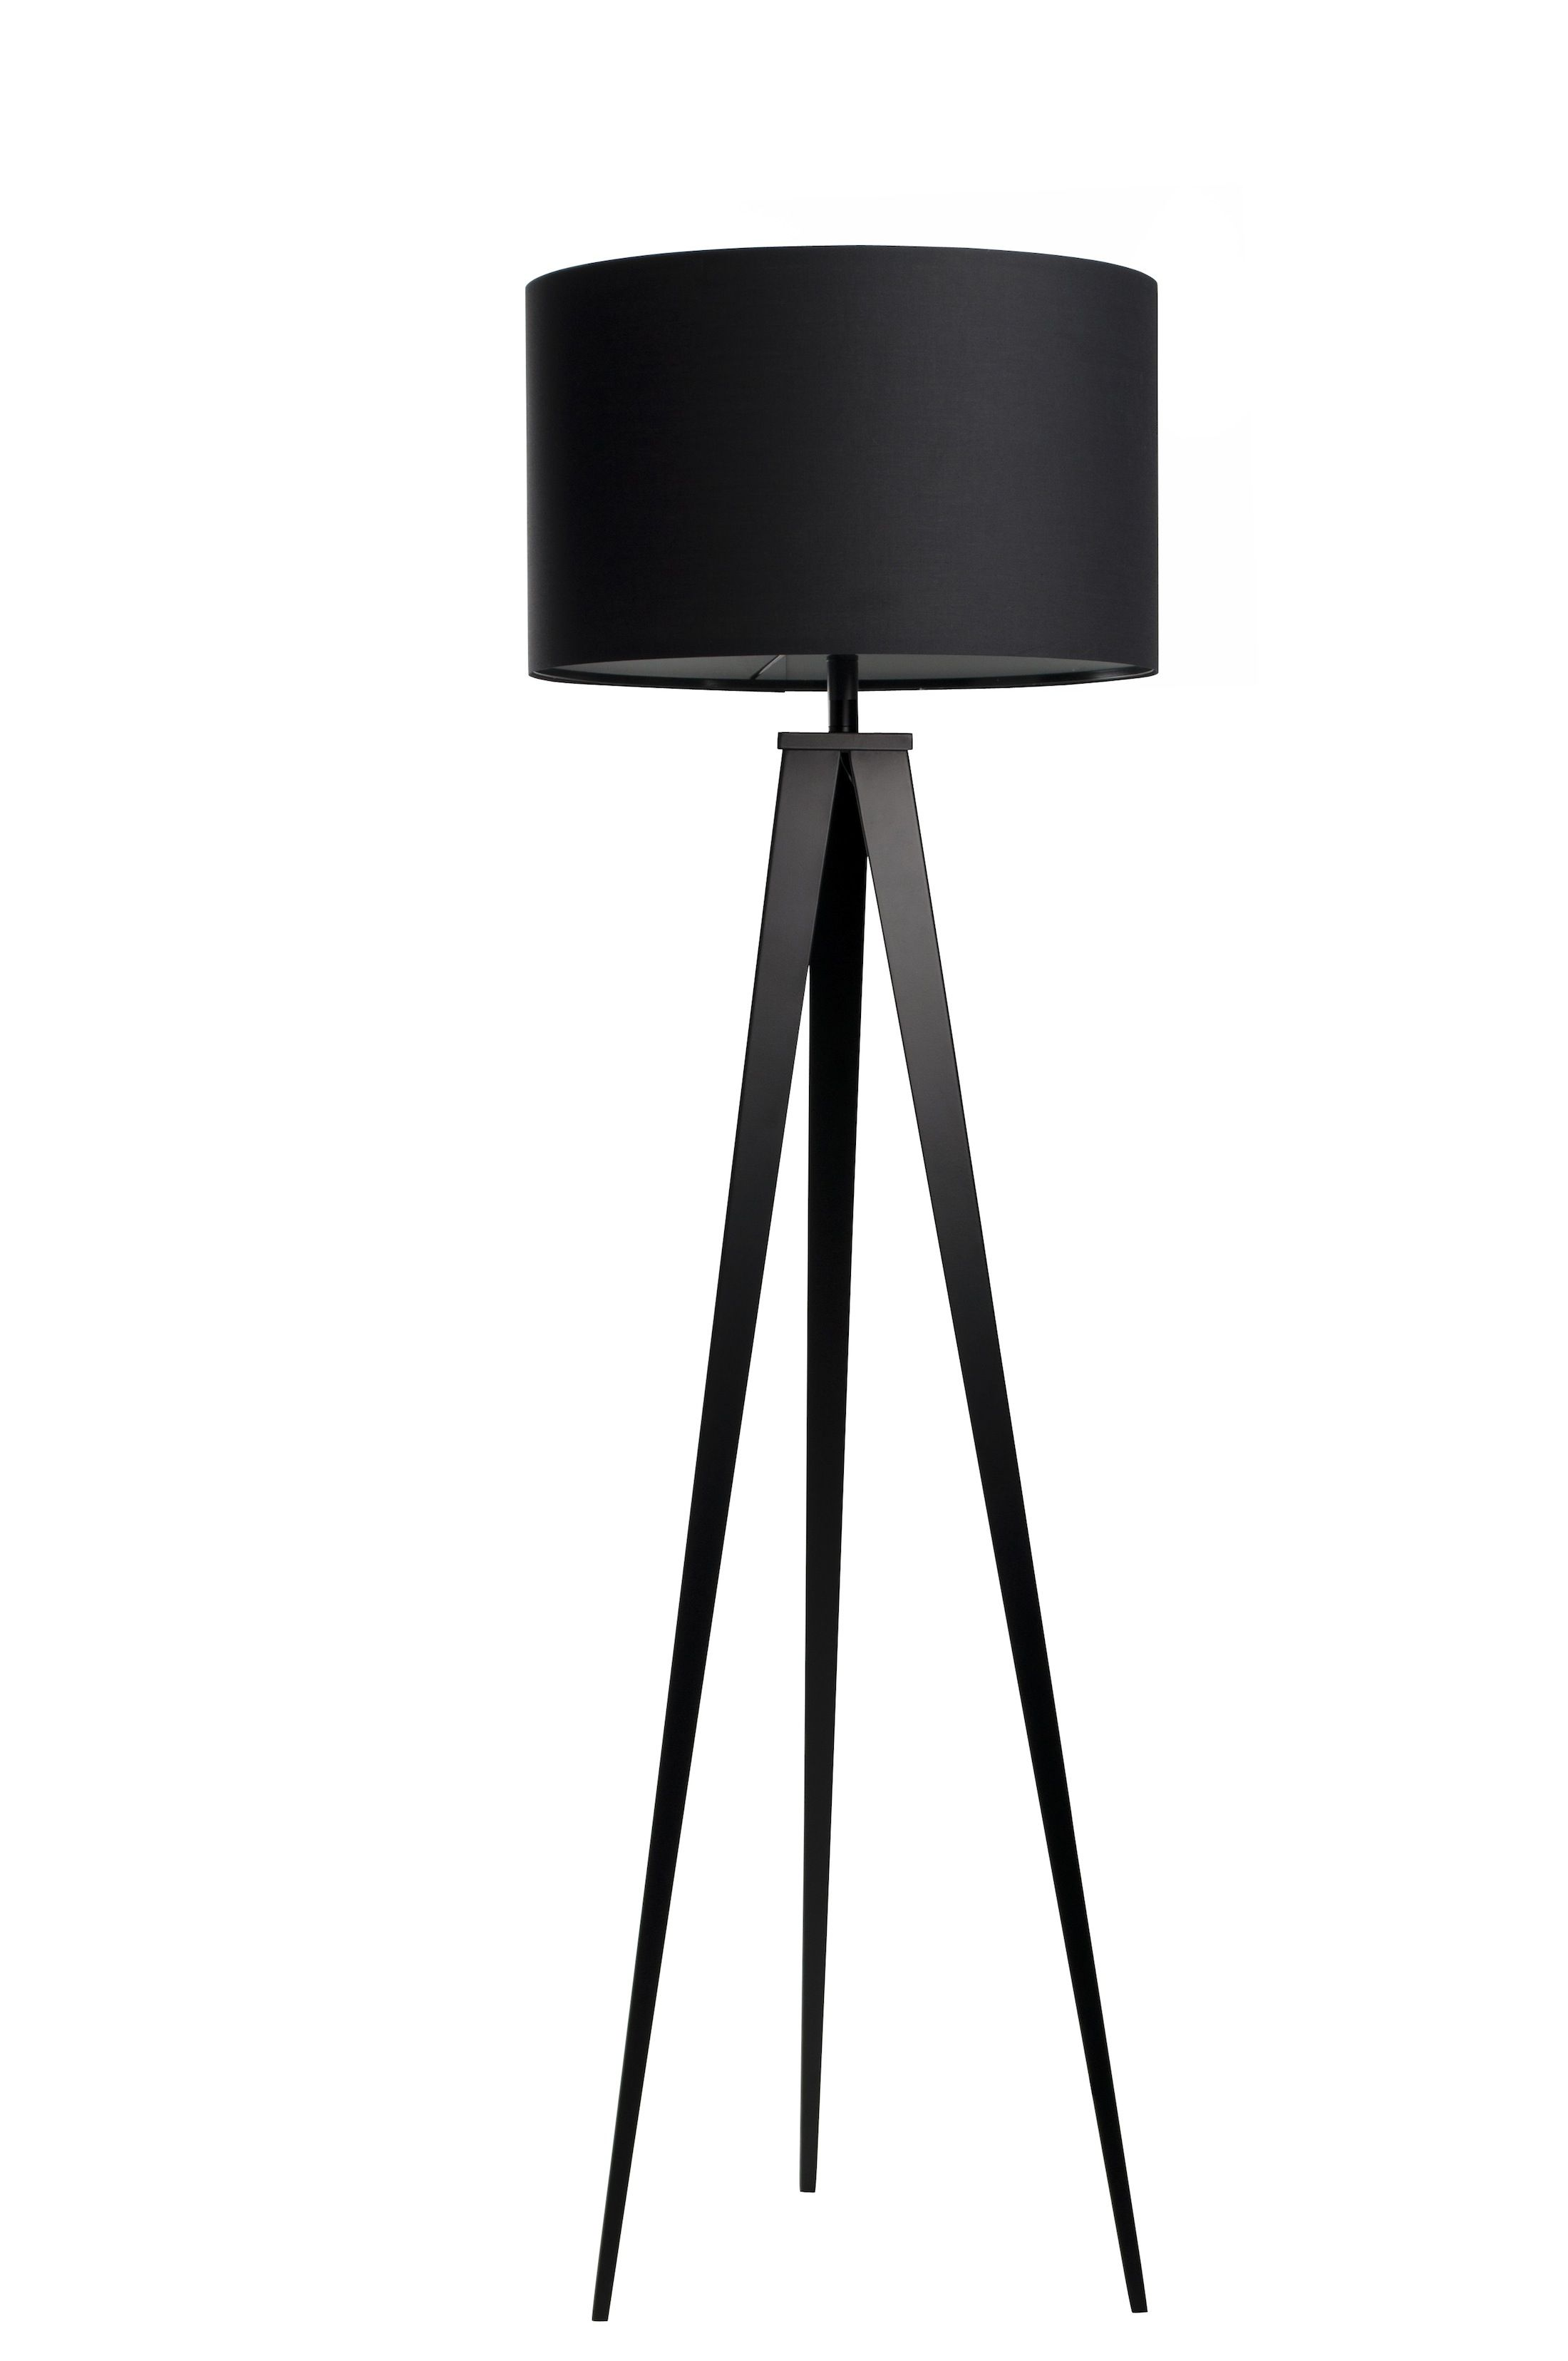 ZUIVER lampa podłogowa tripod black AnOther DESIGN (With